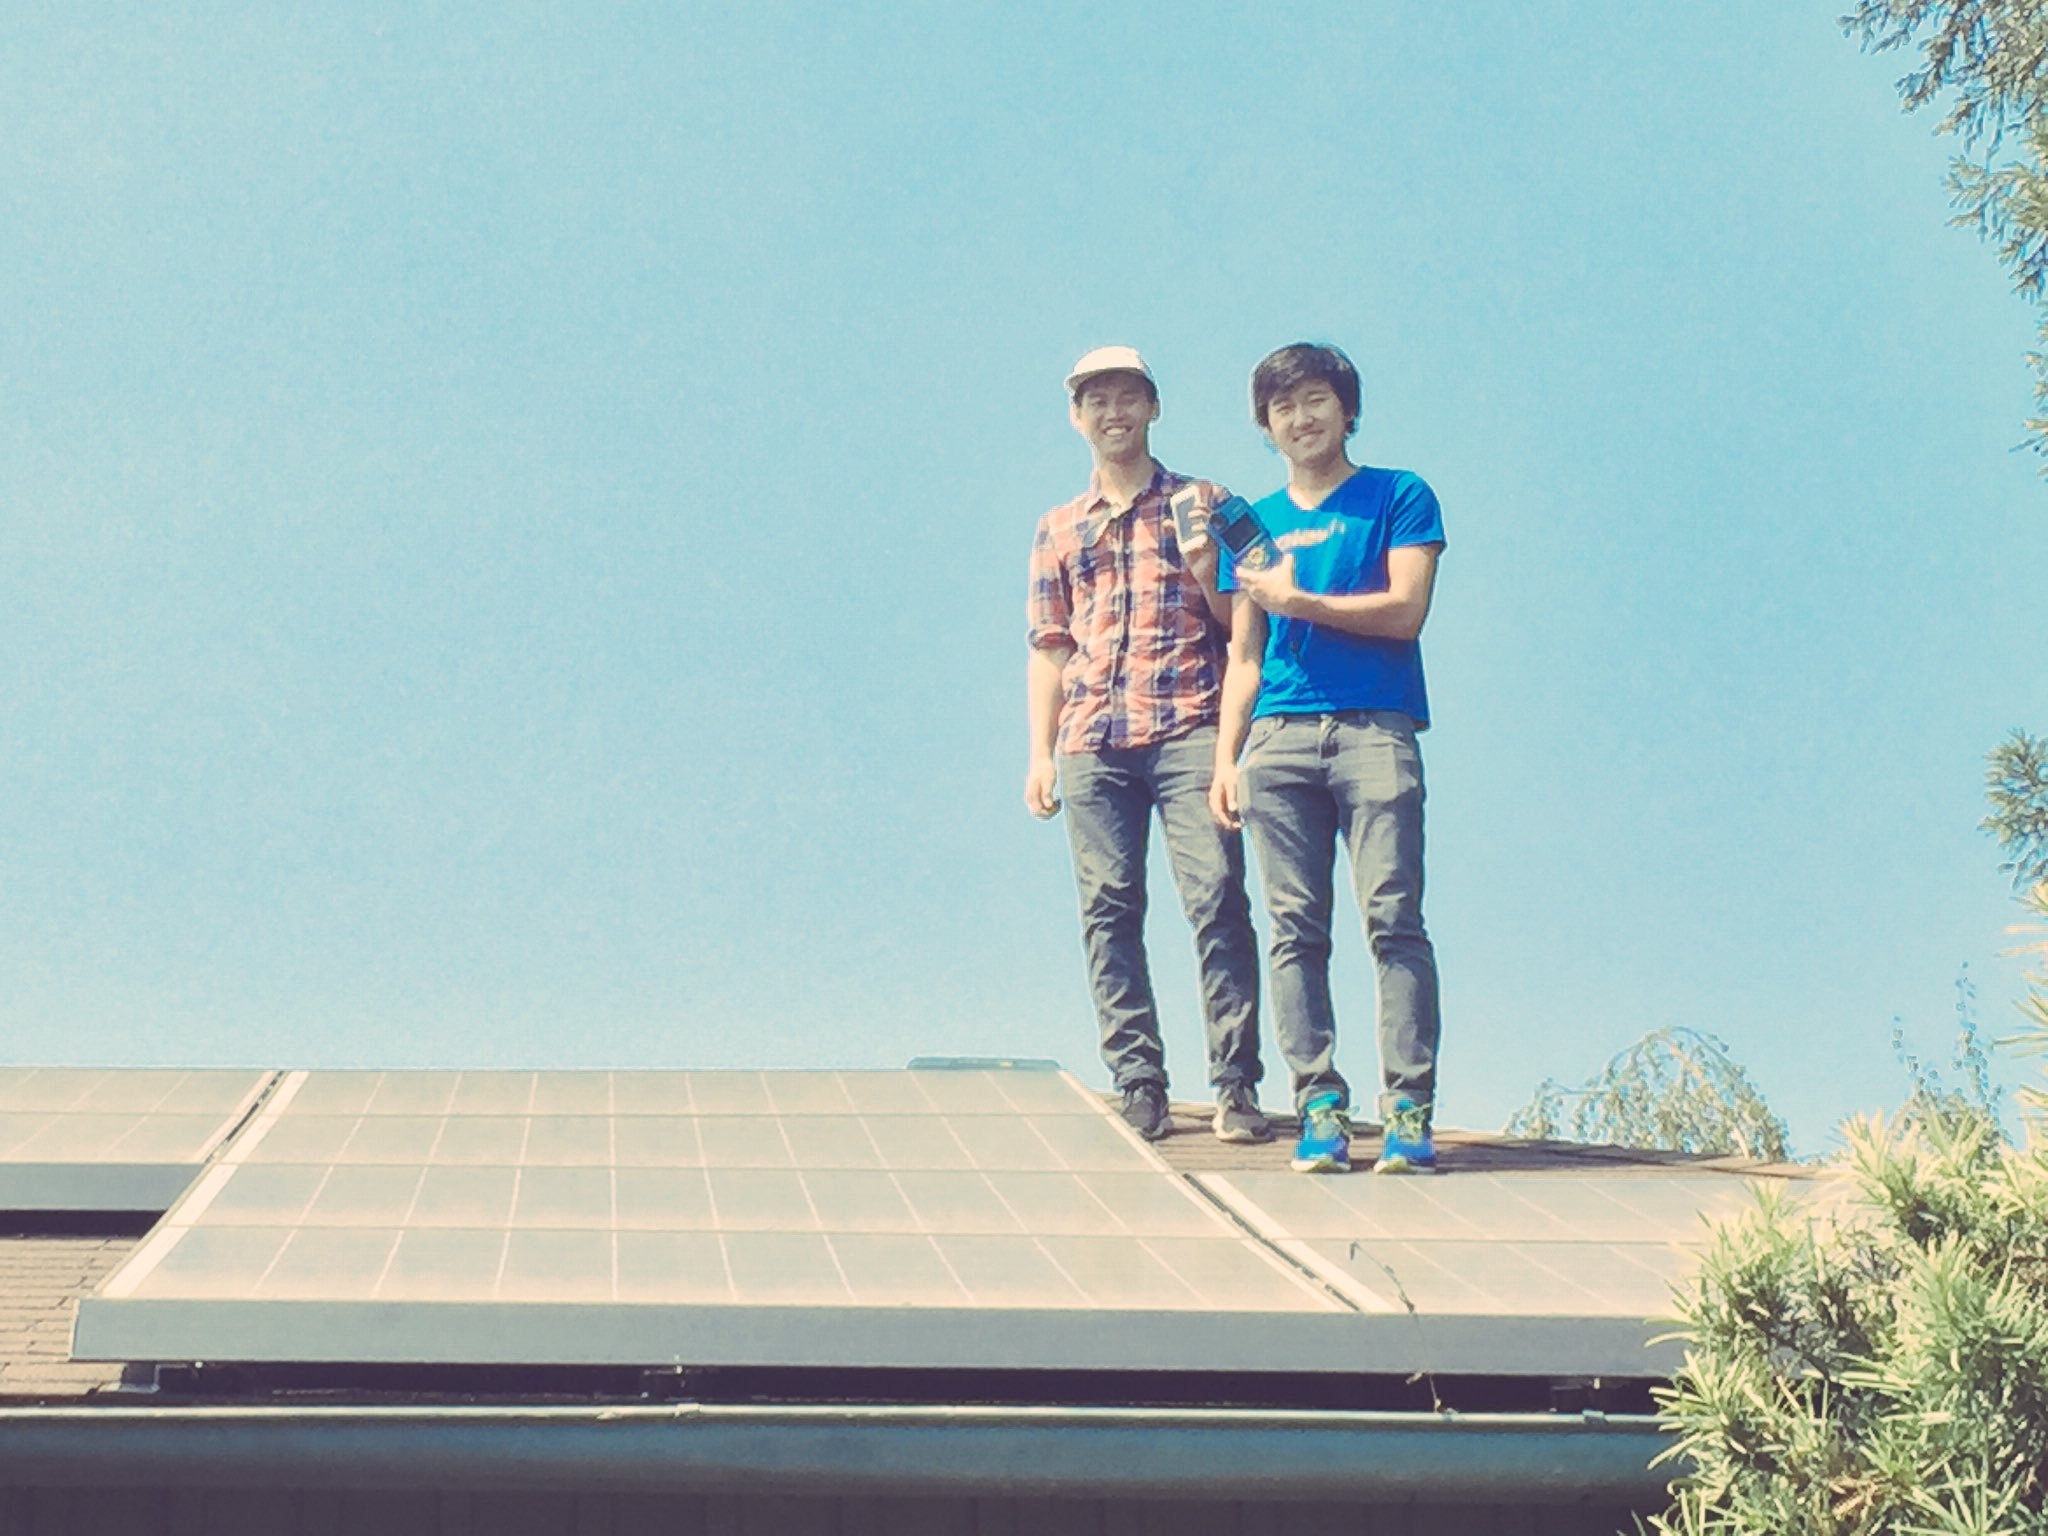 Photon Founders on a Roof